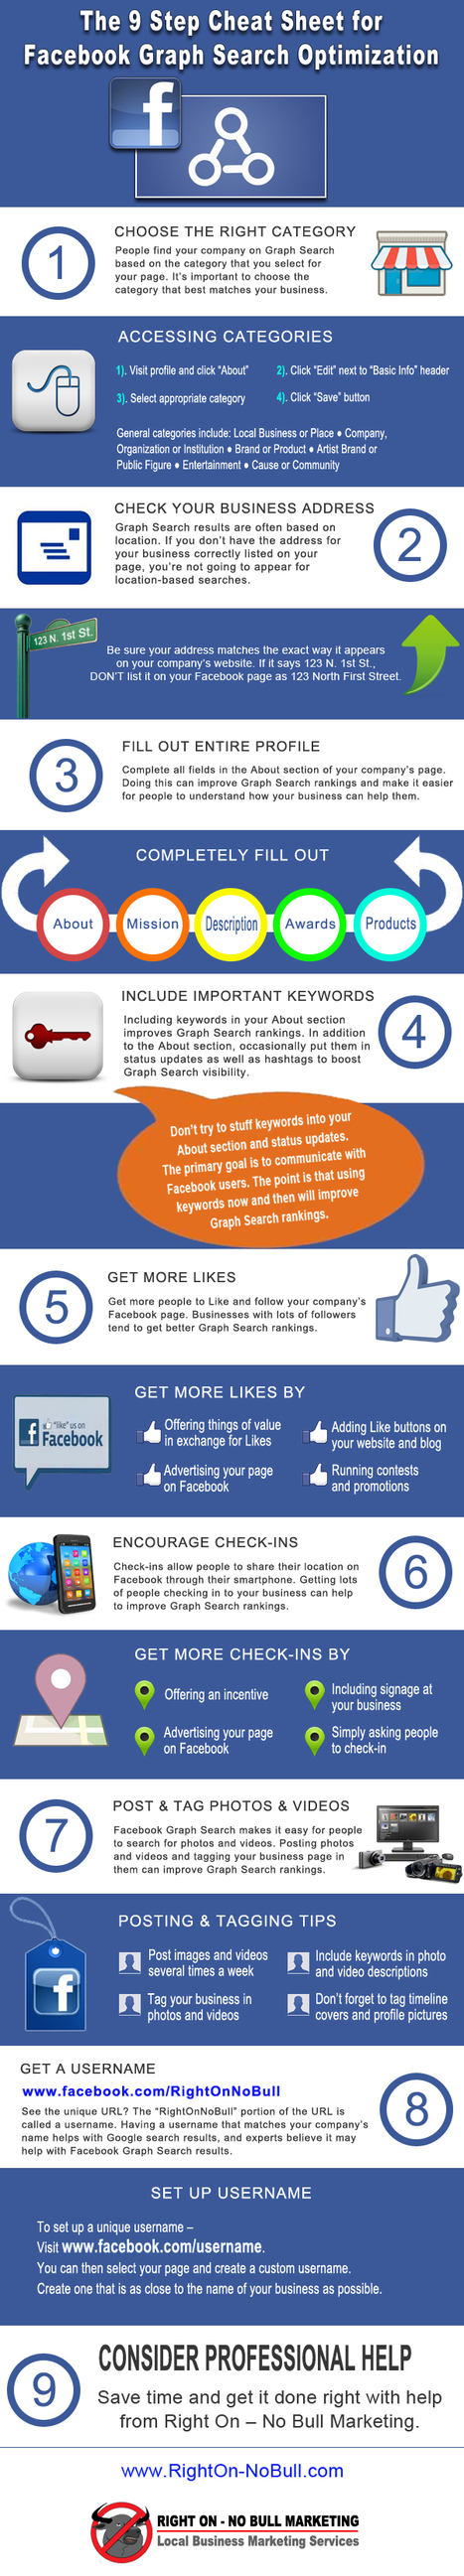 9 Steps for Facebook Graph Search Optimization [INFOGRAPHIC] | Social Media | Scoop.it